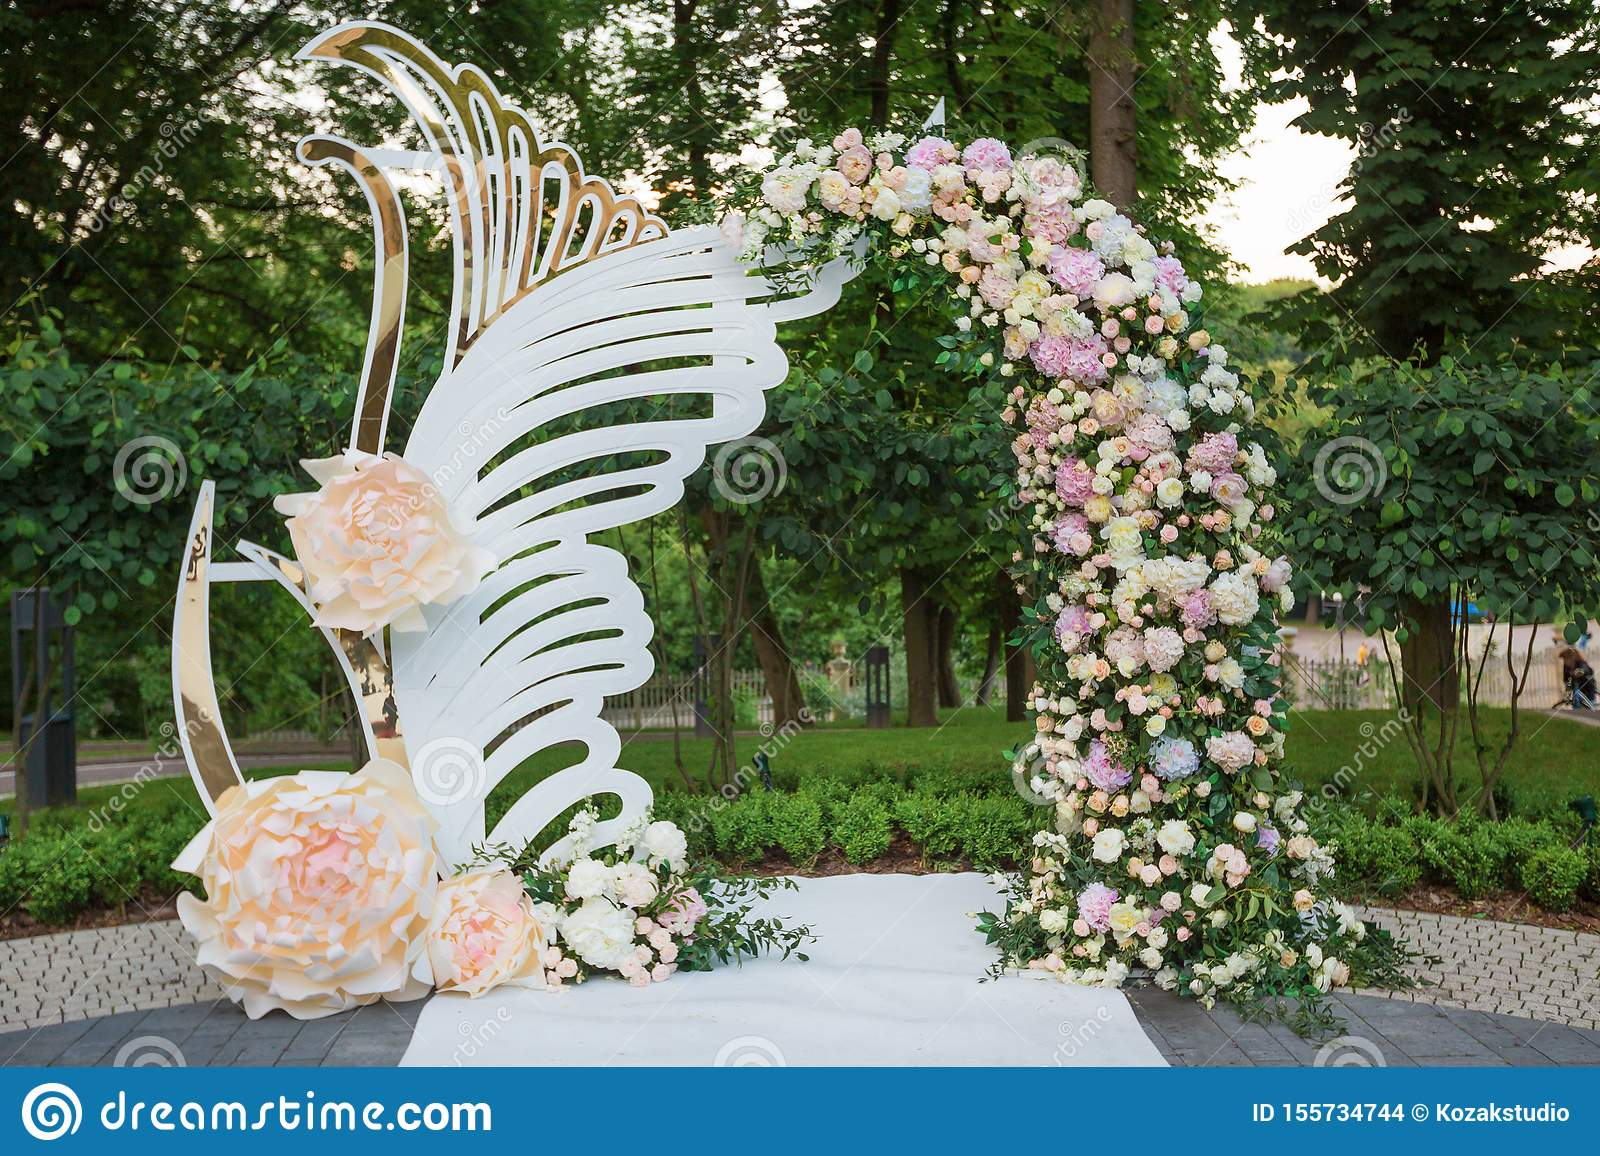 Wedding arch for ceremony outdoor with flower decoration